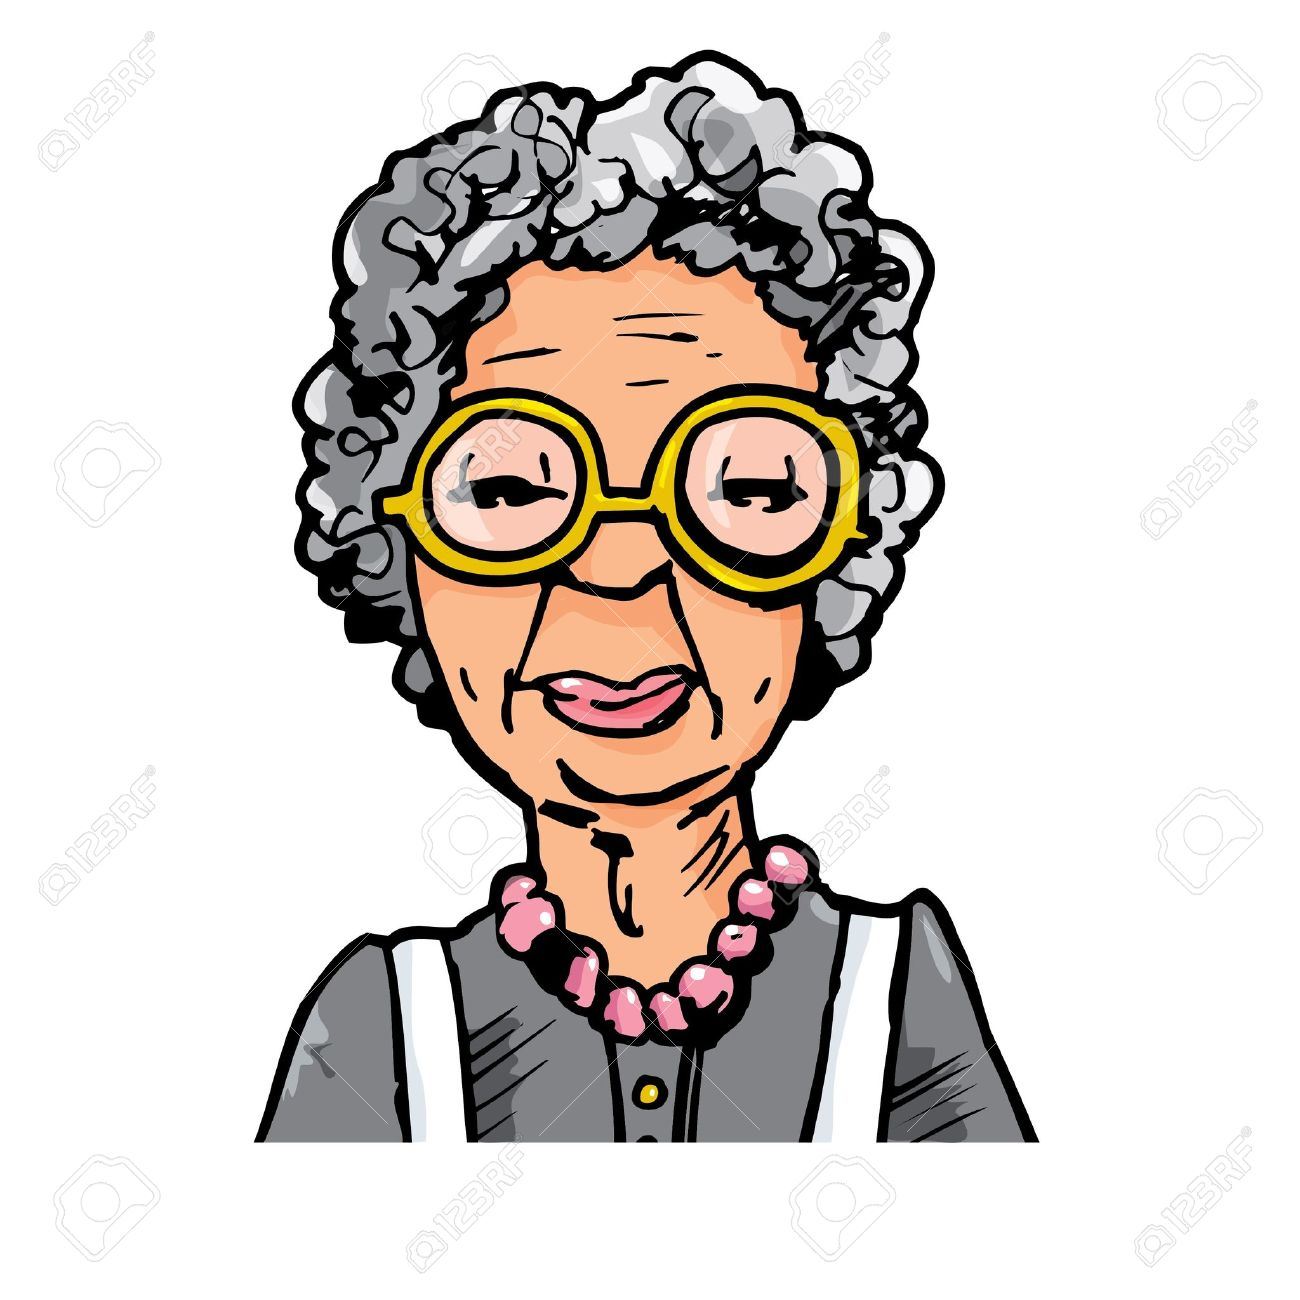 56 876 old woman stock illustrations cliparts and royalty free old rh 123rf com old lady clipart free funny old lady clipart